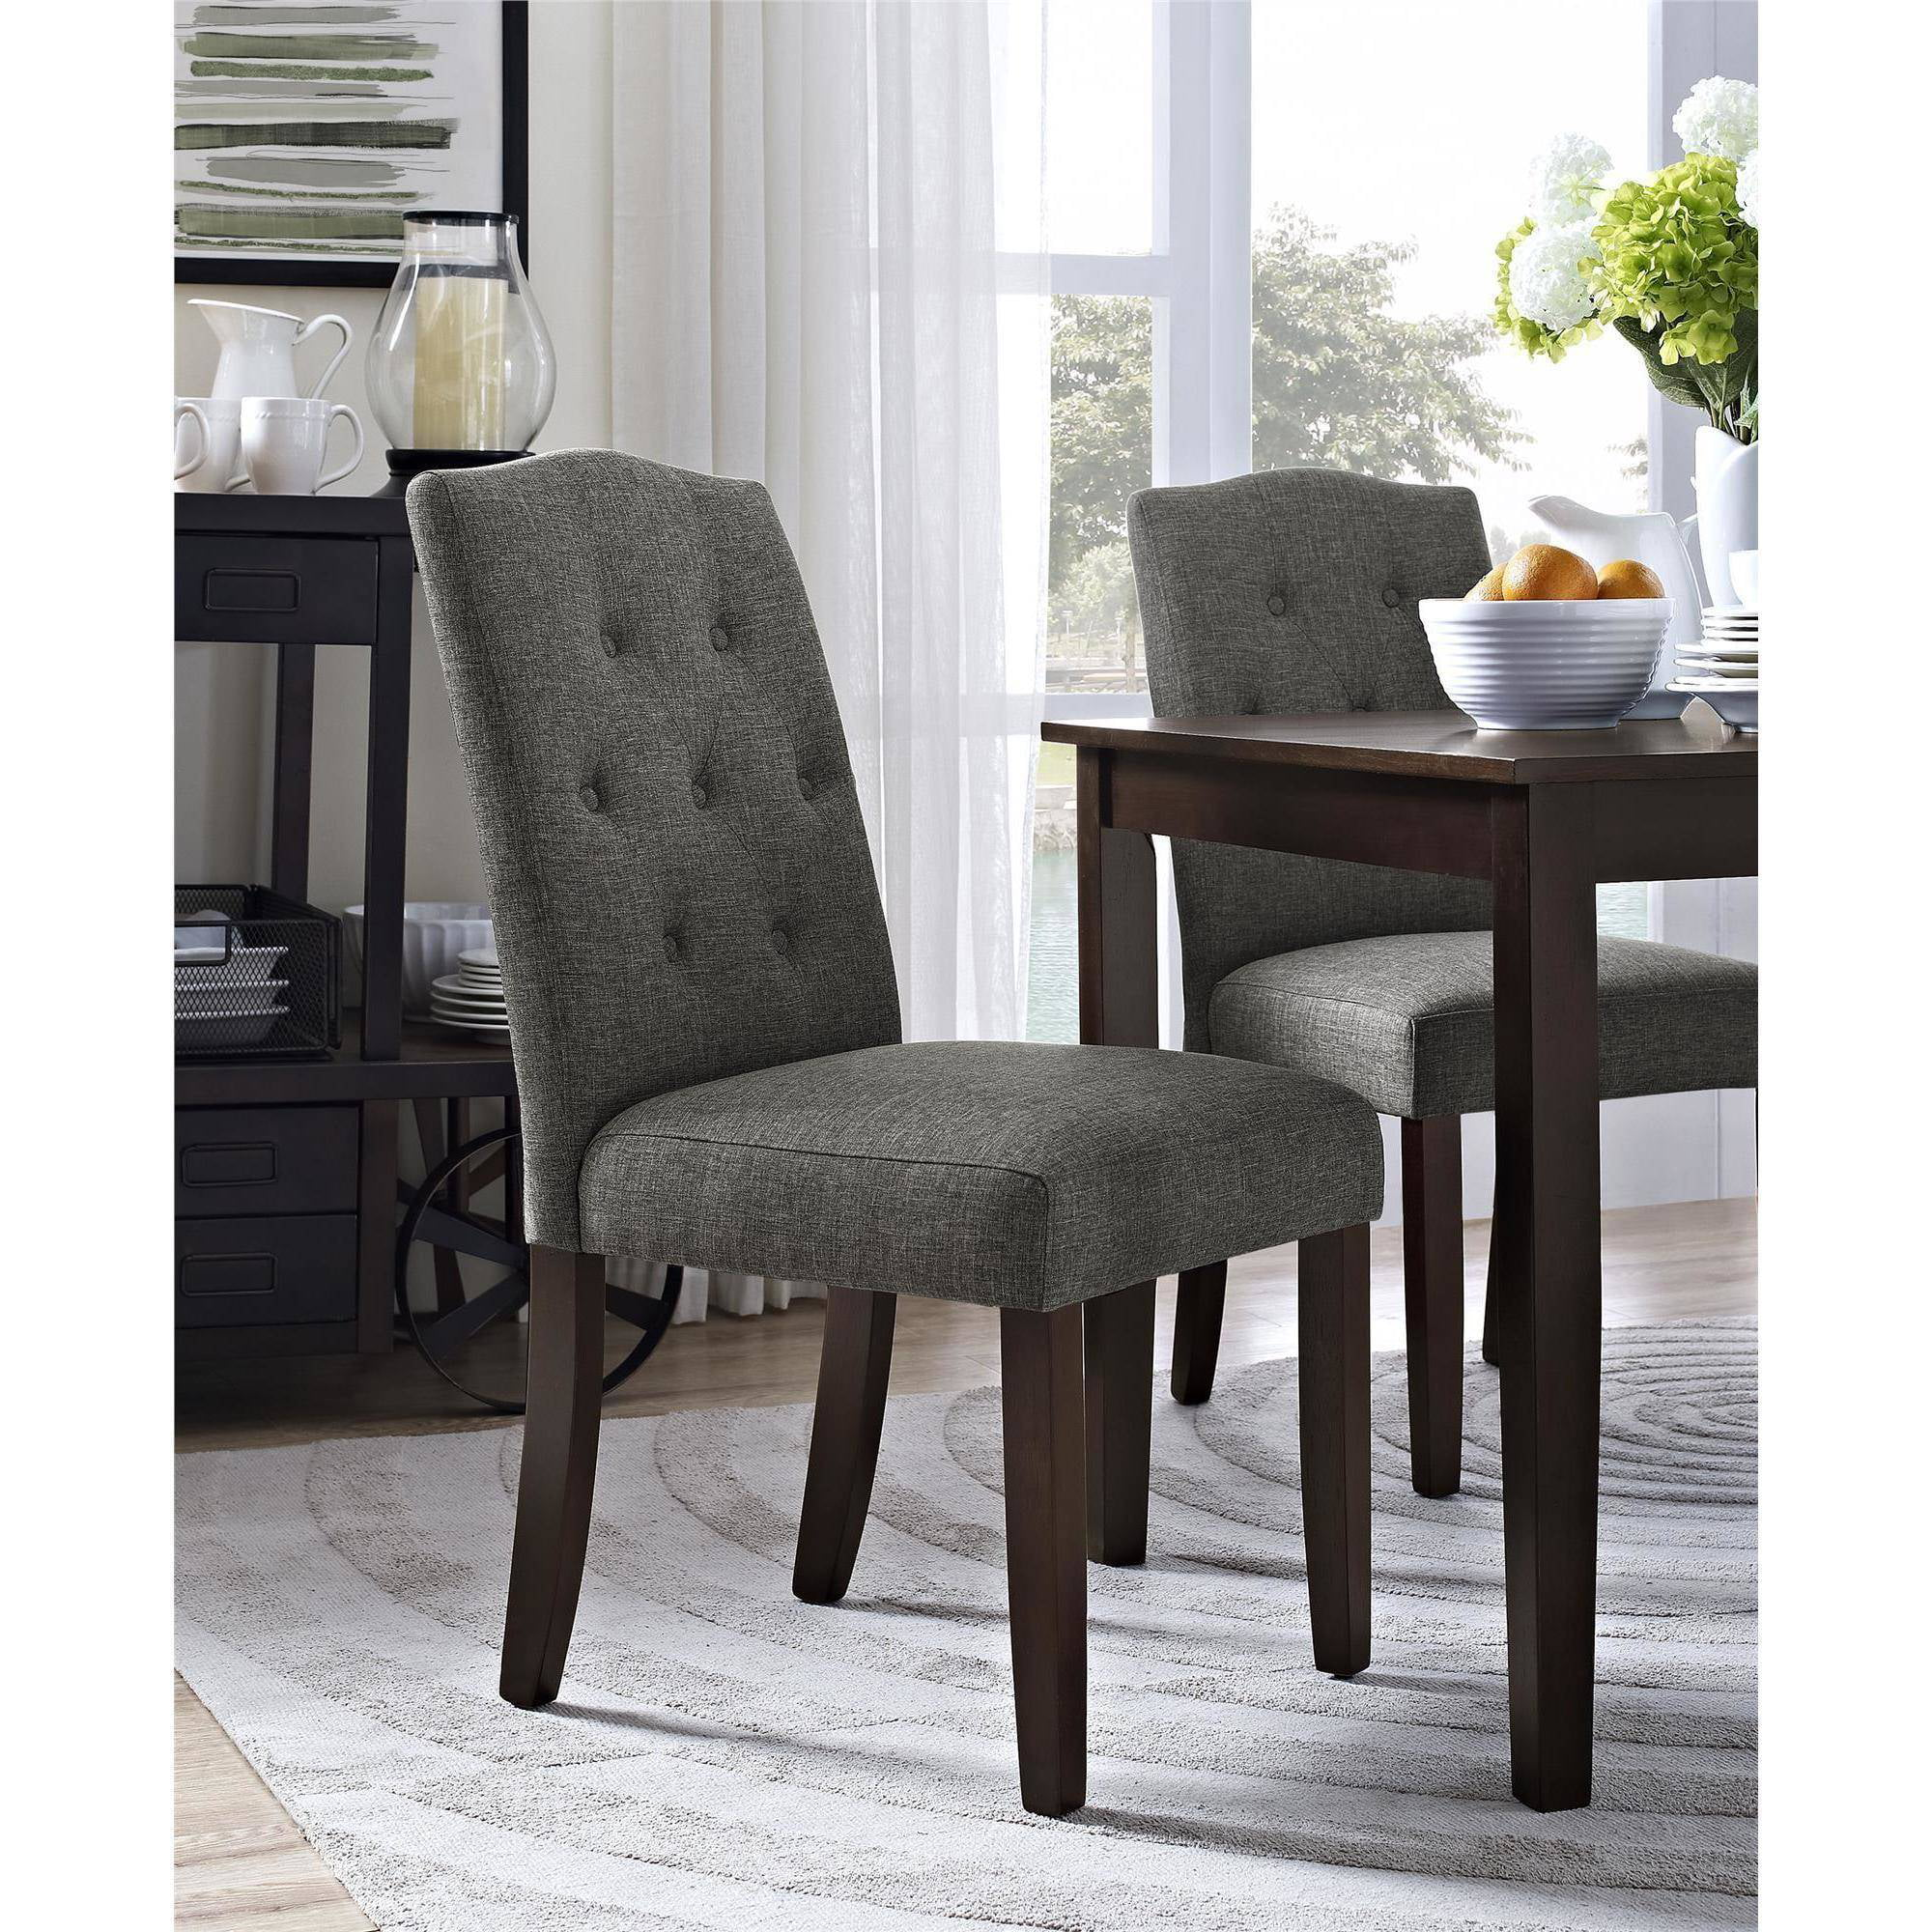 Better Homes And Gardens Parsons Tufted Dining Chair, Multiple Colors    Walmart.com